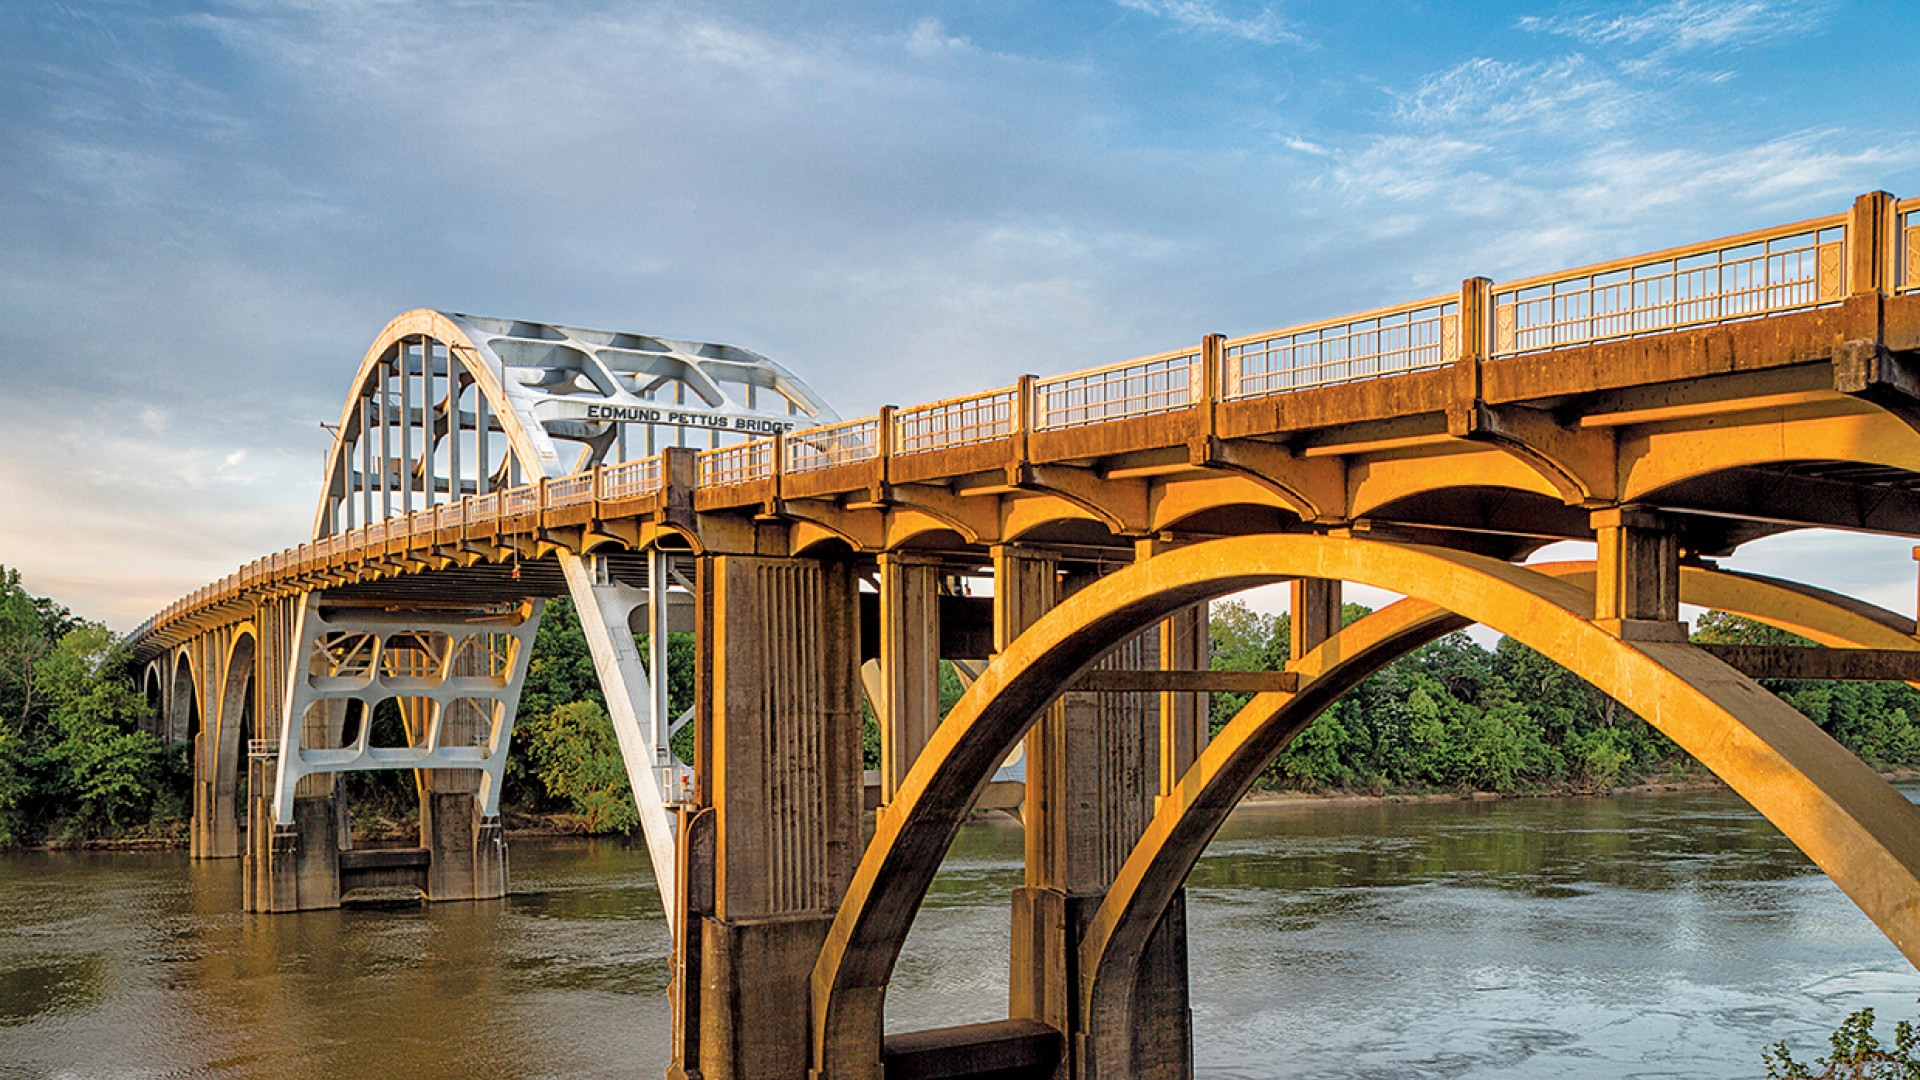 Edmund Pettus Bridge, part of the new Civil Rights Trail in the US